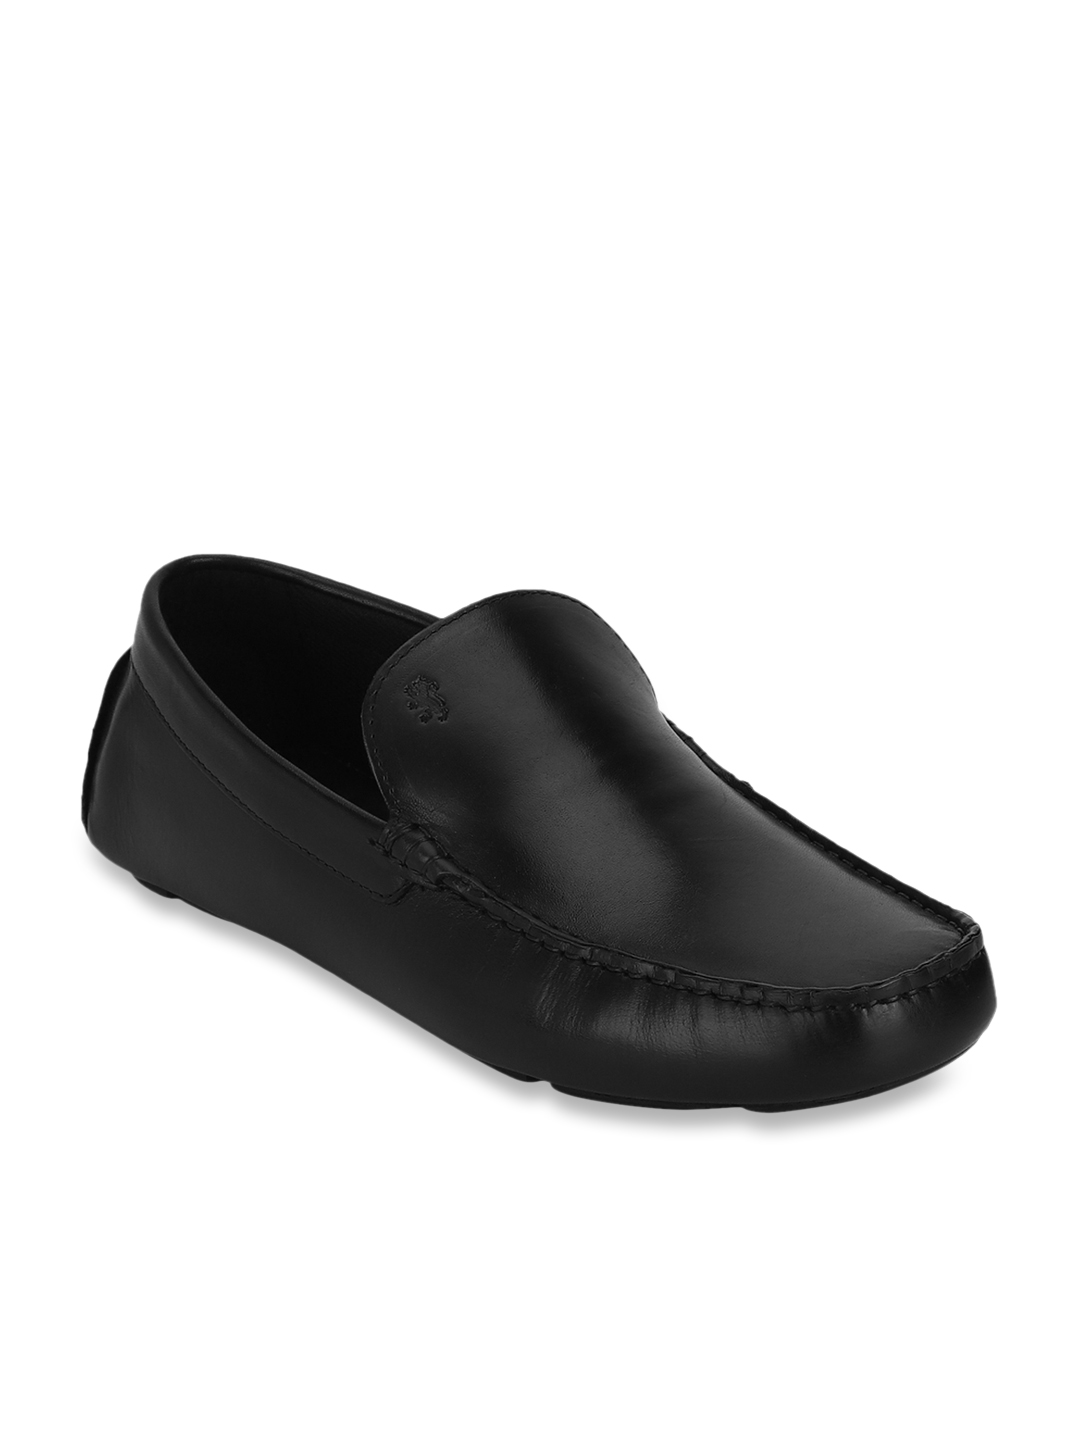 Buy Red Tape Black Casual Loafers for